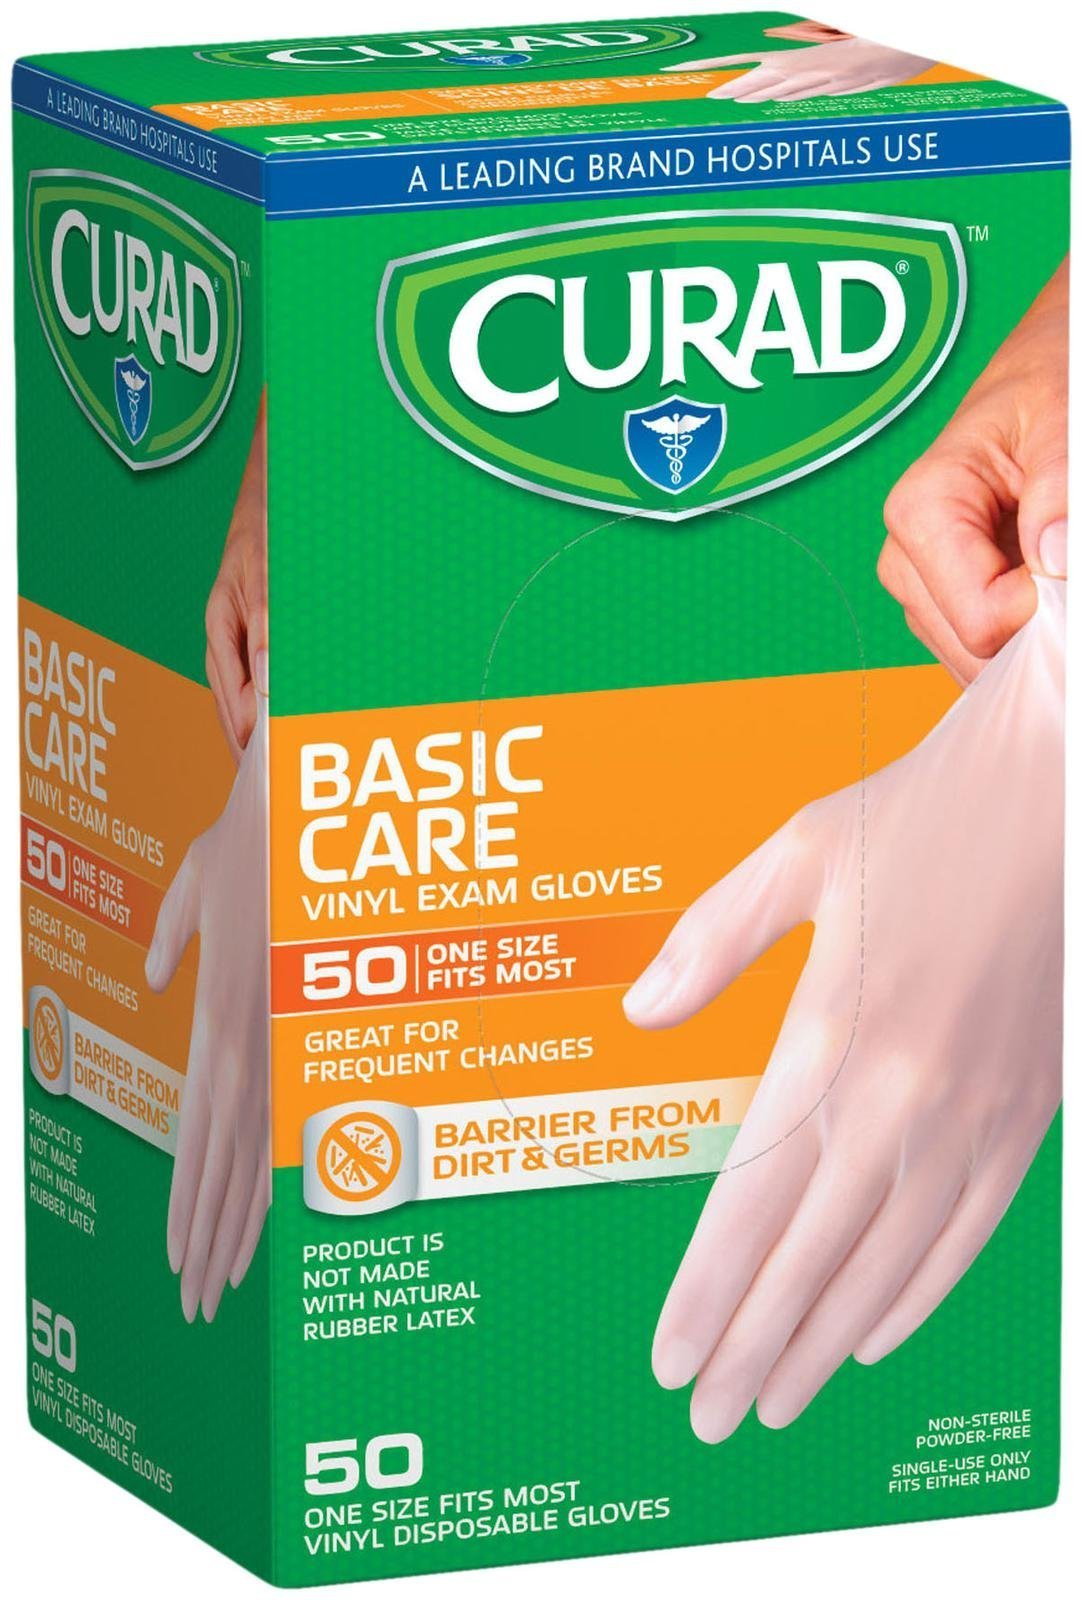 Curad Basic Care Vinyl Exam Gloves - 50 CT